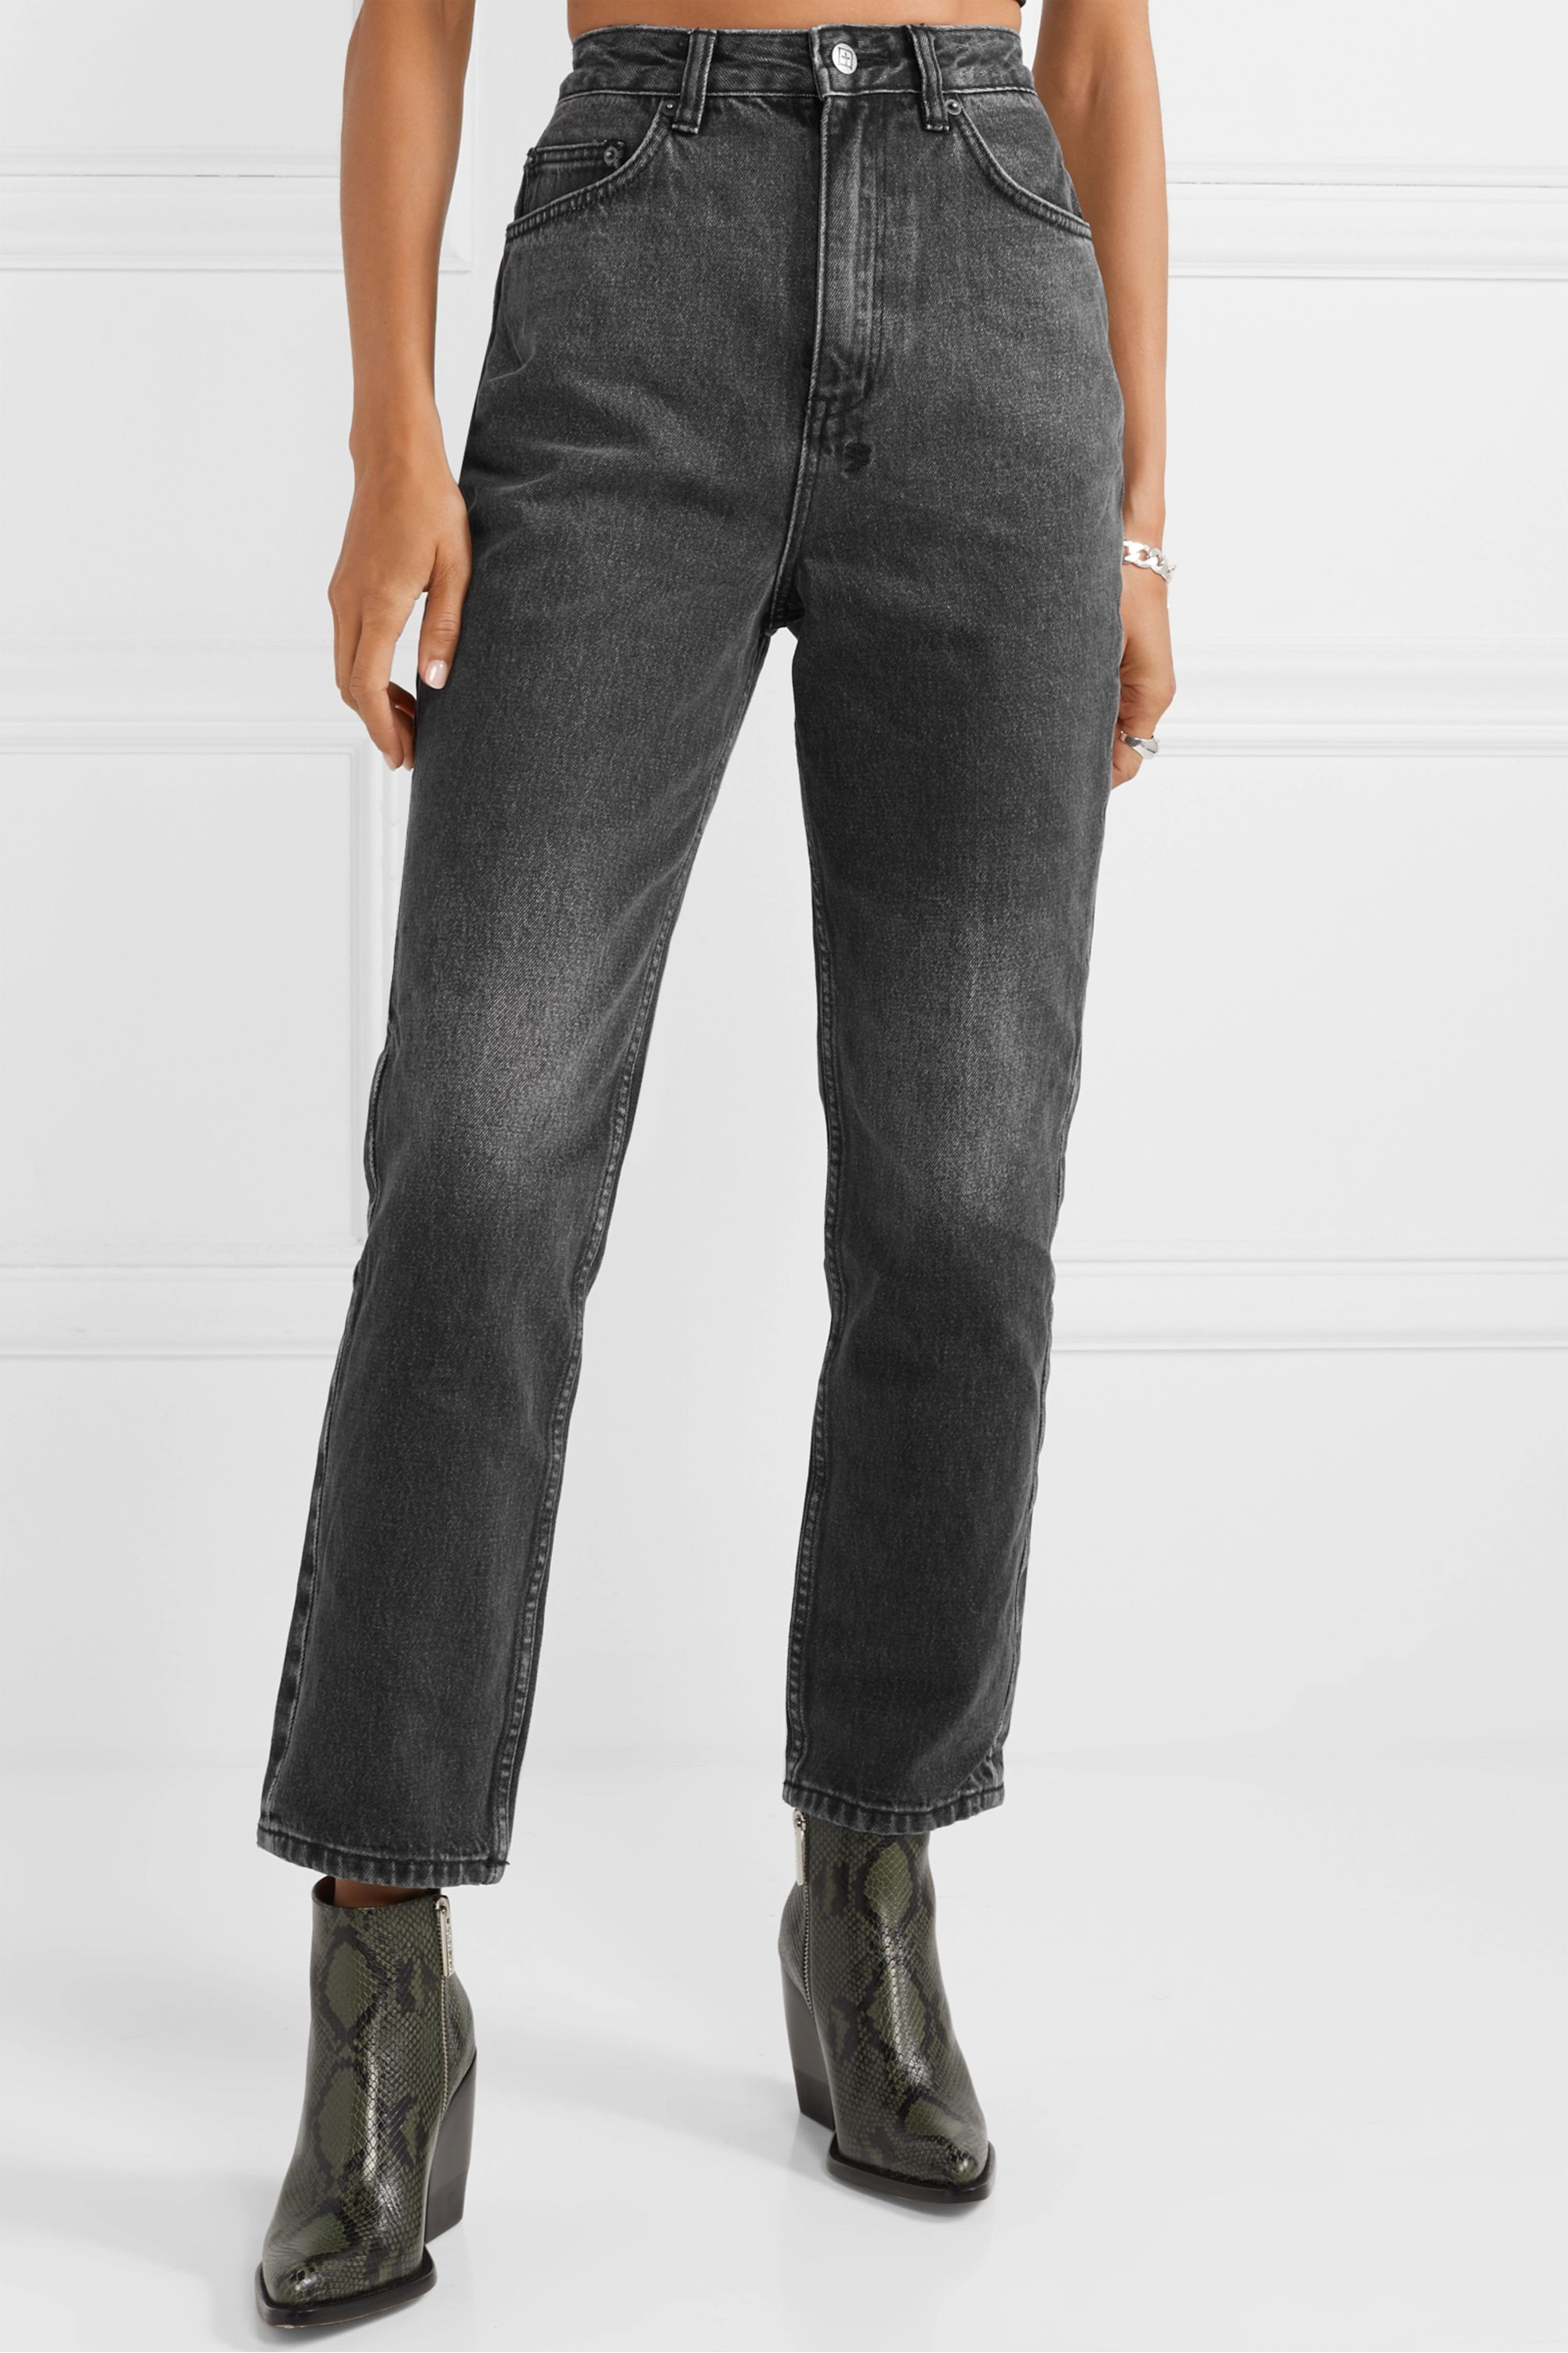 Ksubi Chlo Wasted high-rise straight-leg jeans